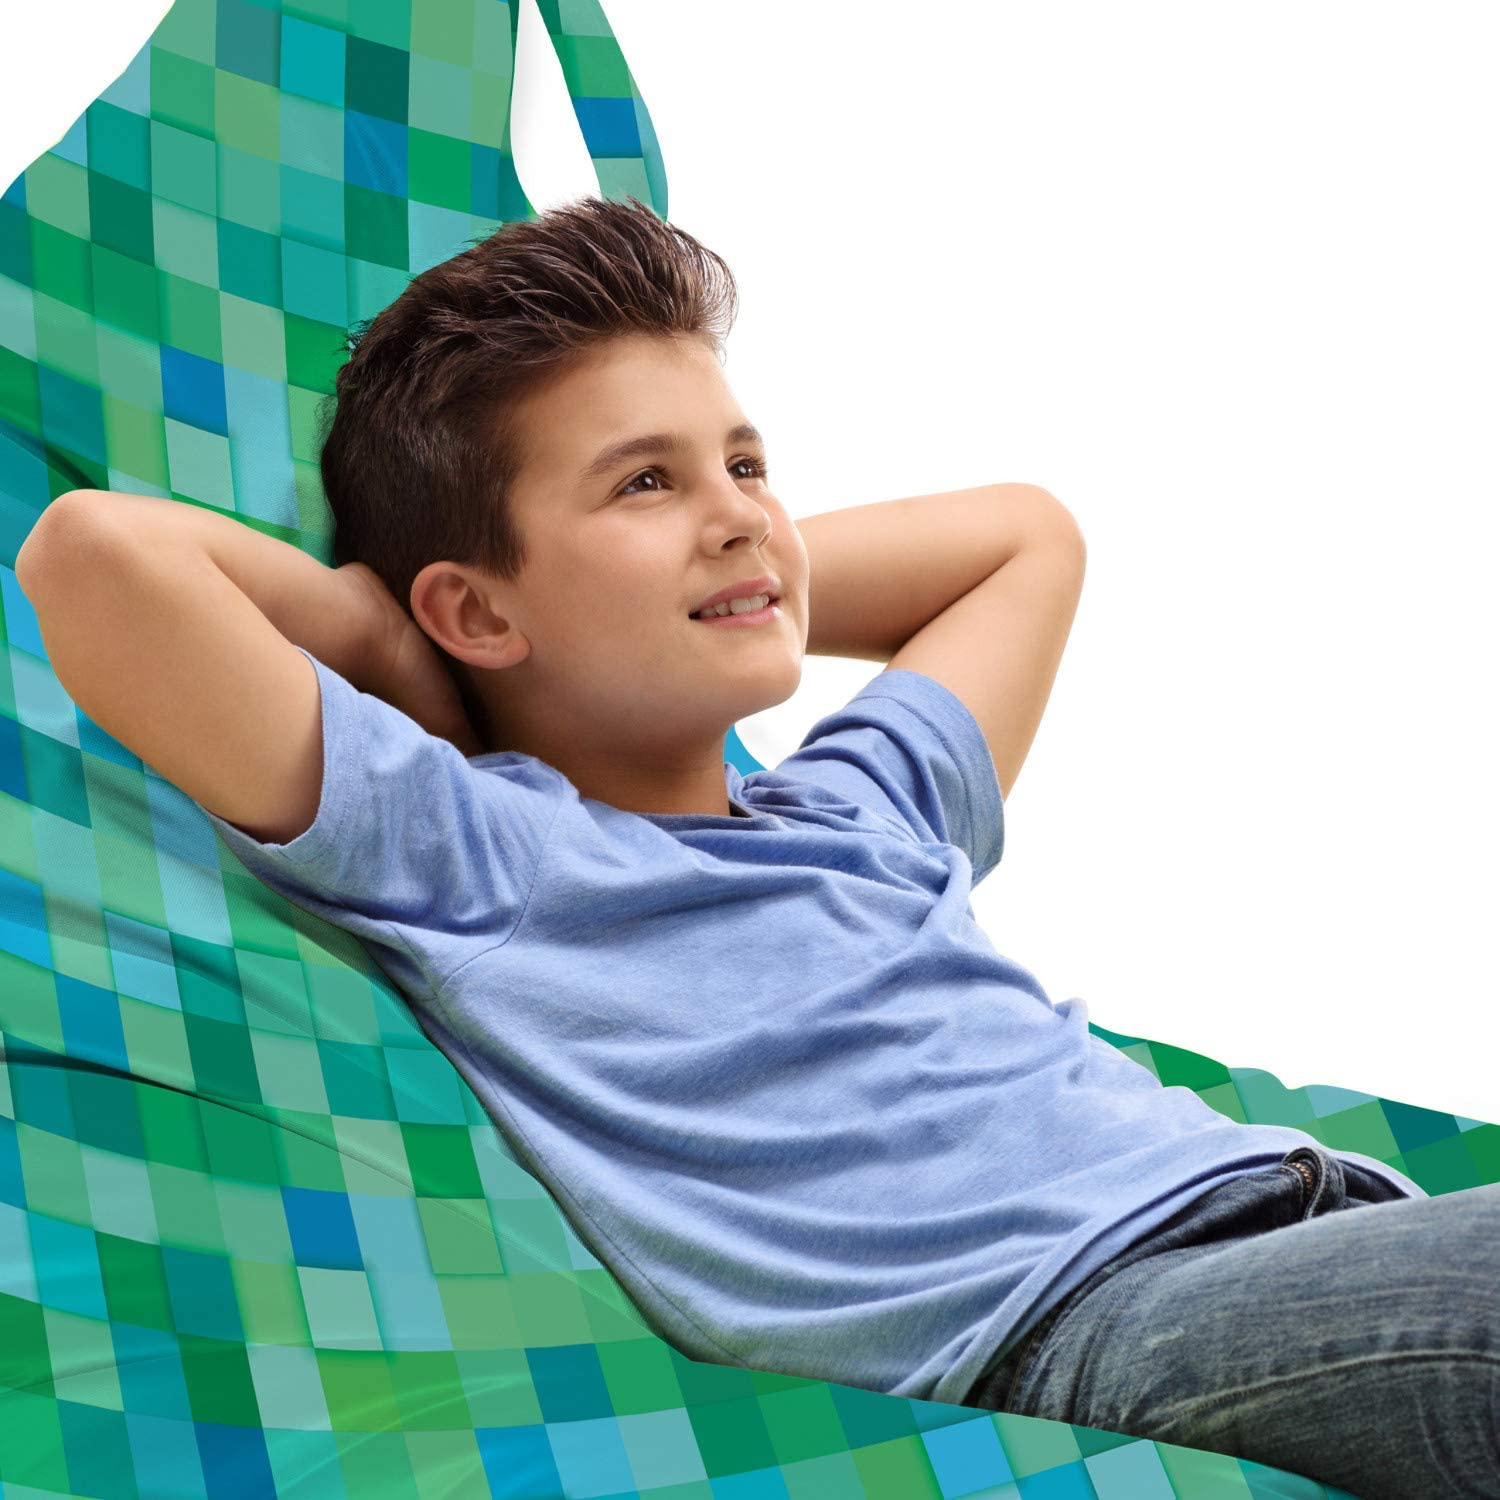 New popularity Ambesonne Teal Lounger Chair Bag Pattern Abstract Squar Cube 3D In stock